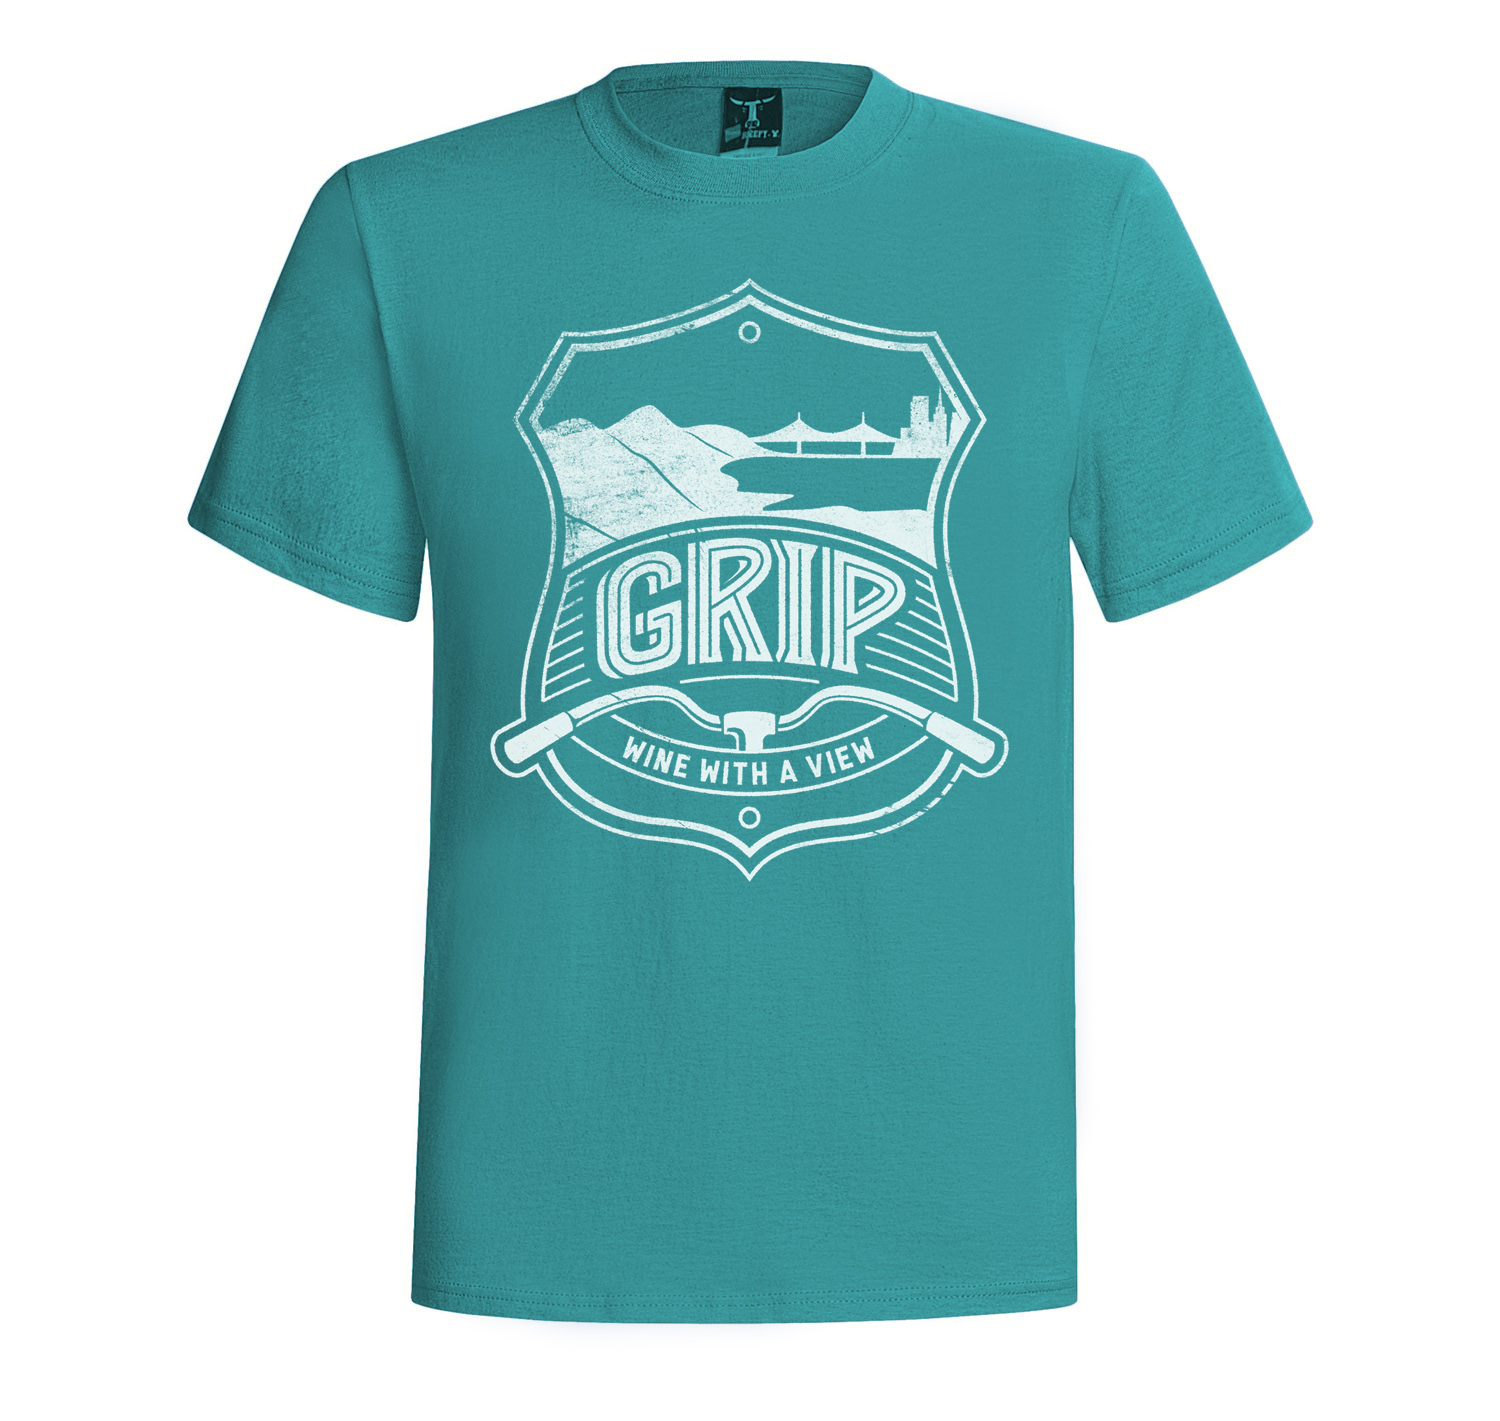 grip_shirt_teal